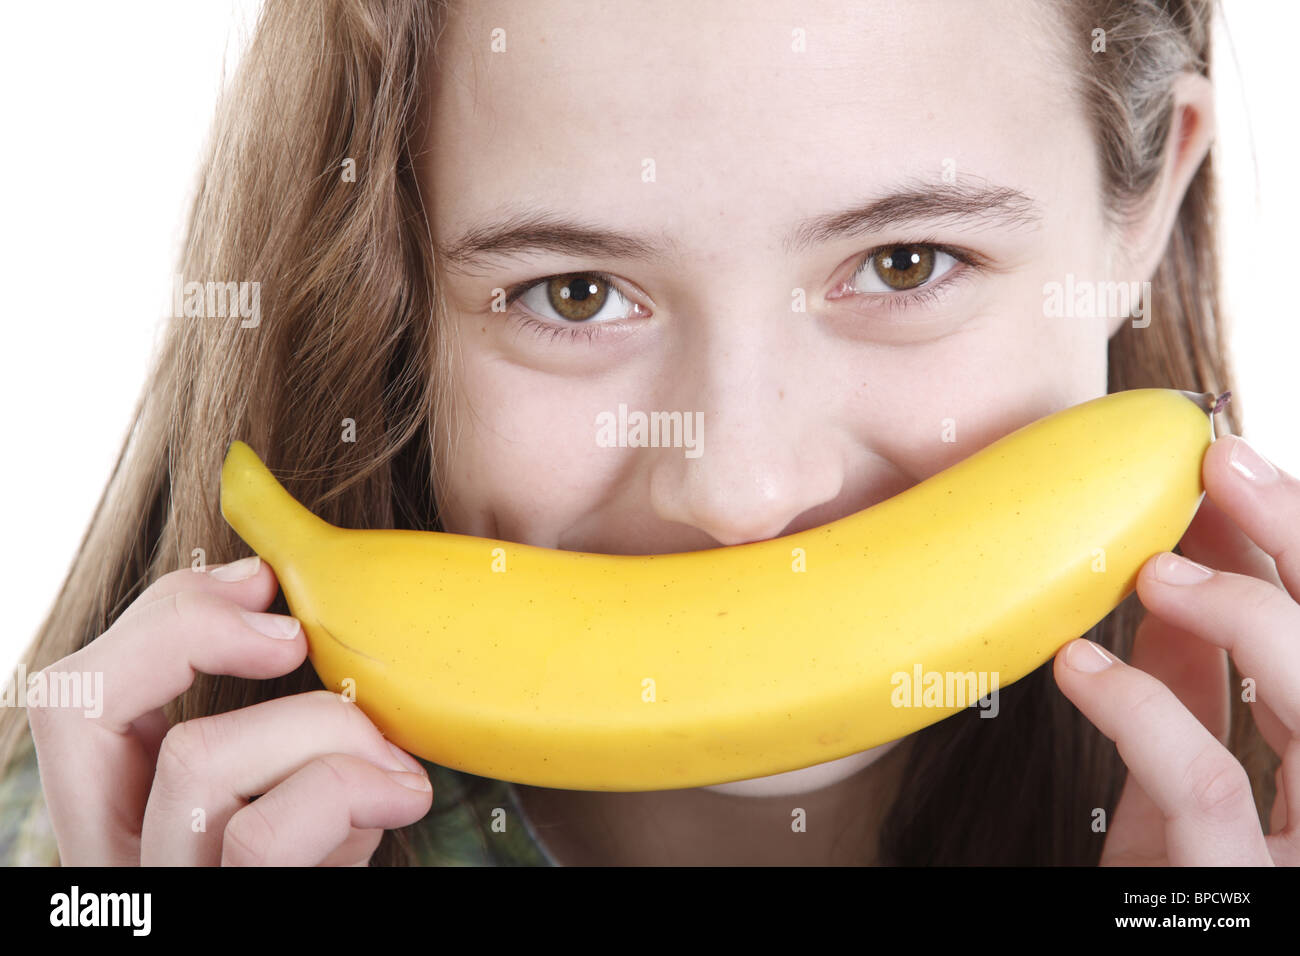 Teen girl holding a banana like a mustache - Stock Image